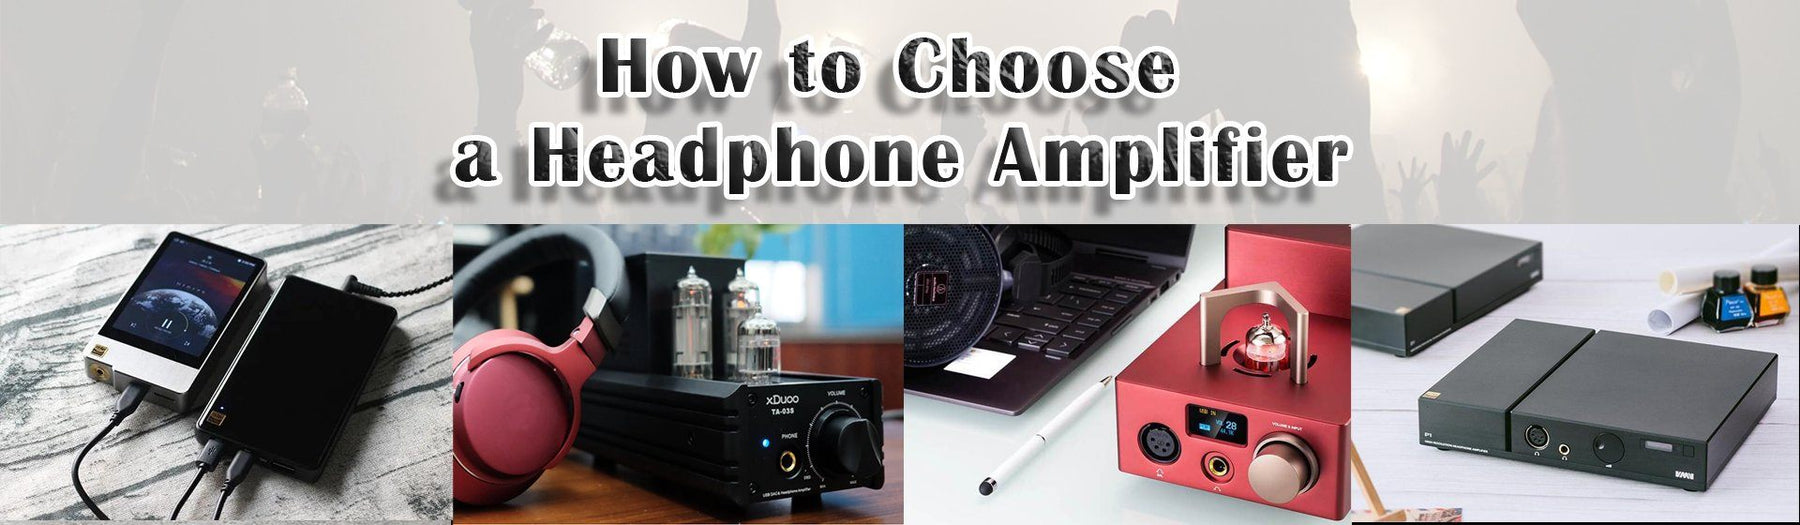 How to Choose a Headphone Amplifie